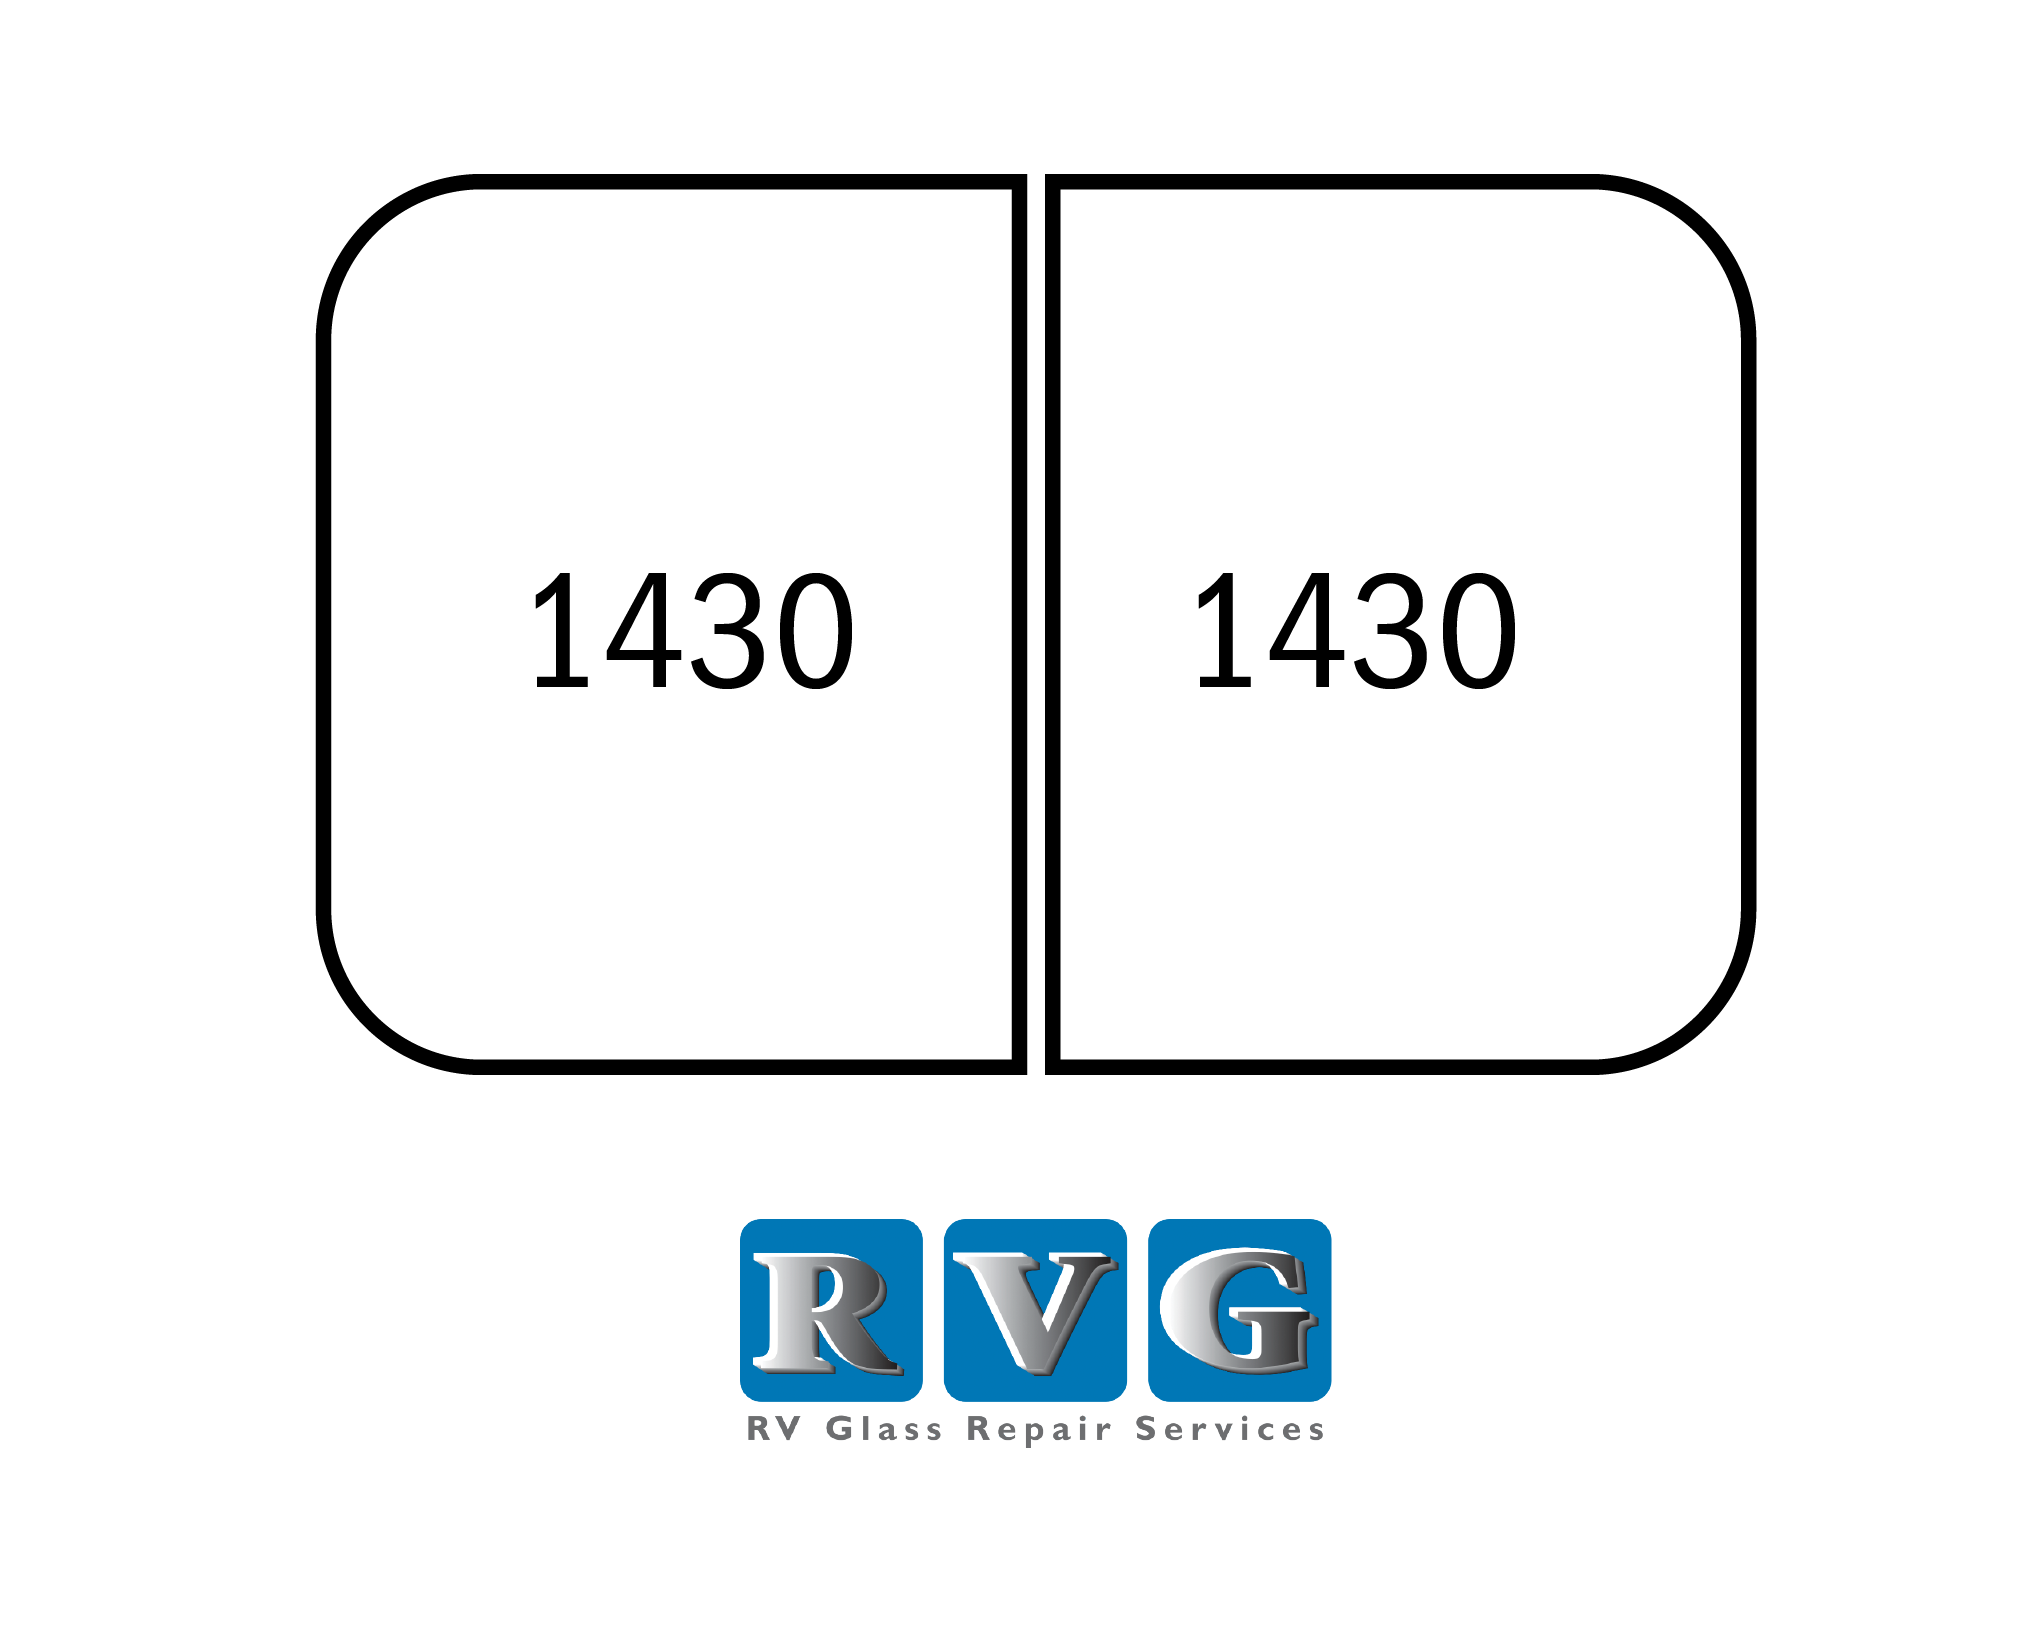 Rv Glass Repair Services Pattern Library Rv Glass